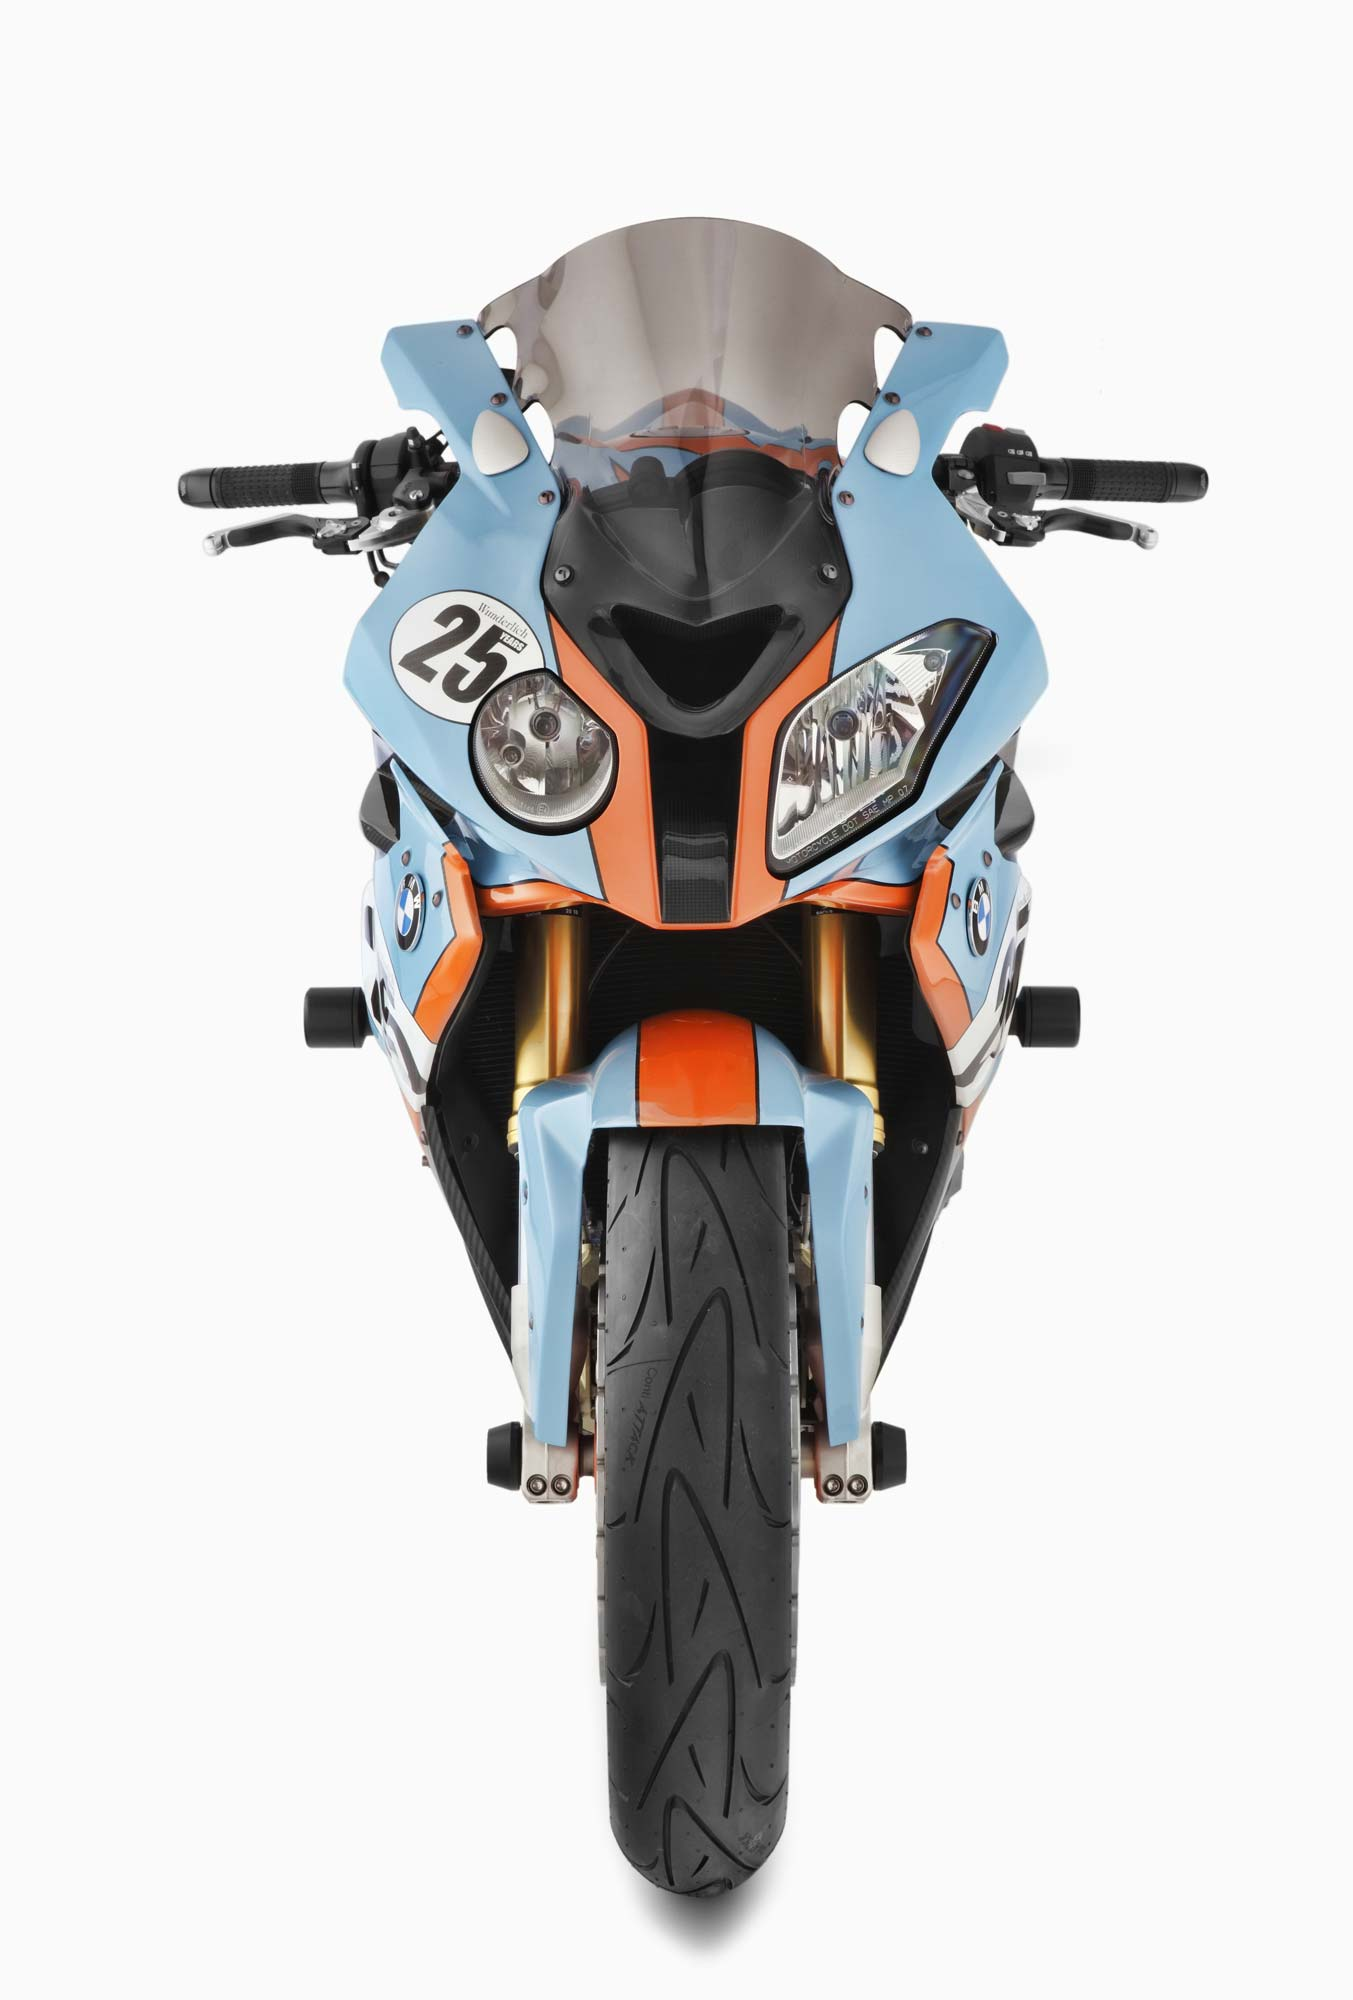 bmw xmoto for filter parts dakar funduro engine filters sertao item oil xcountry strada motorcycle xchallenge in from